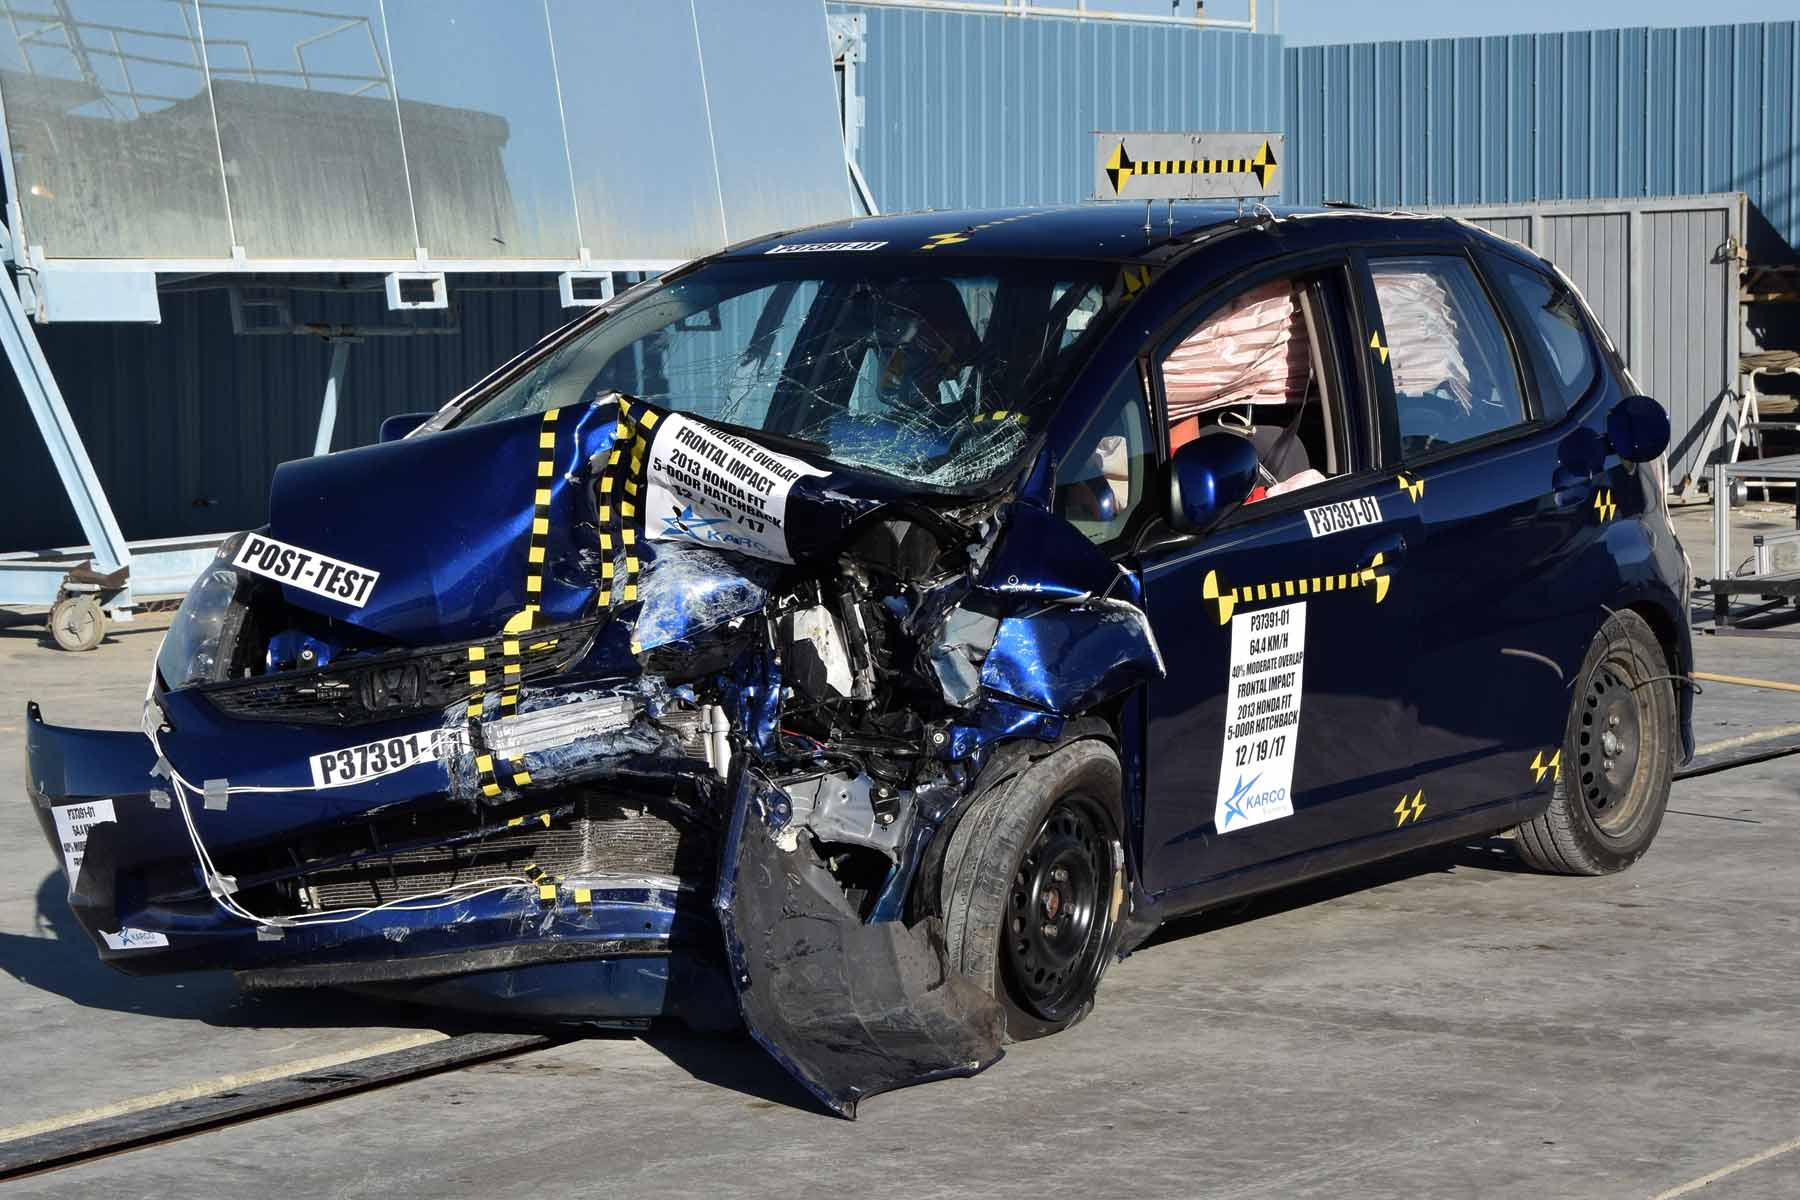 Swell Aftermarket Parts Crash Test Data Released By The Tracy Law Firm Ranpur Mohammedshrine Wiring Digital Resources Ranpurmohammedshrineorg